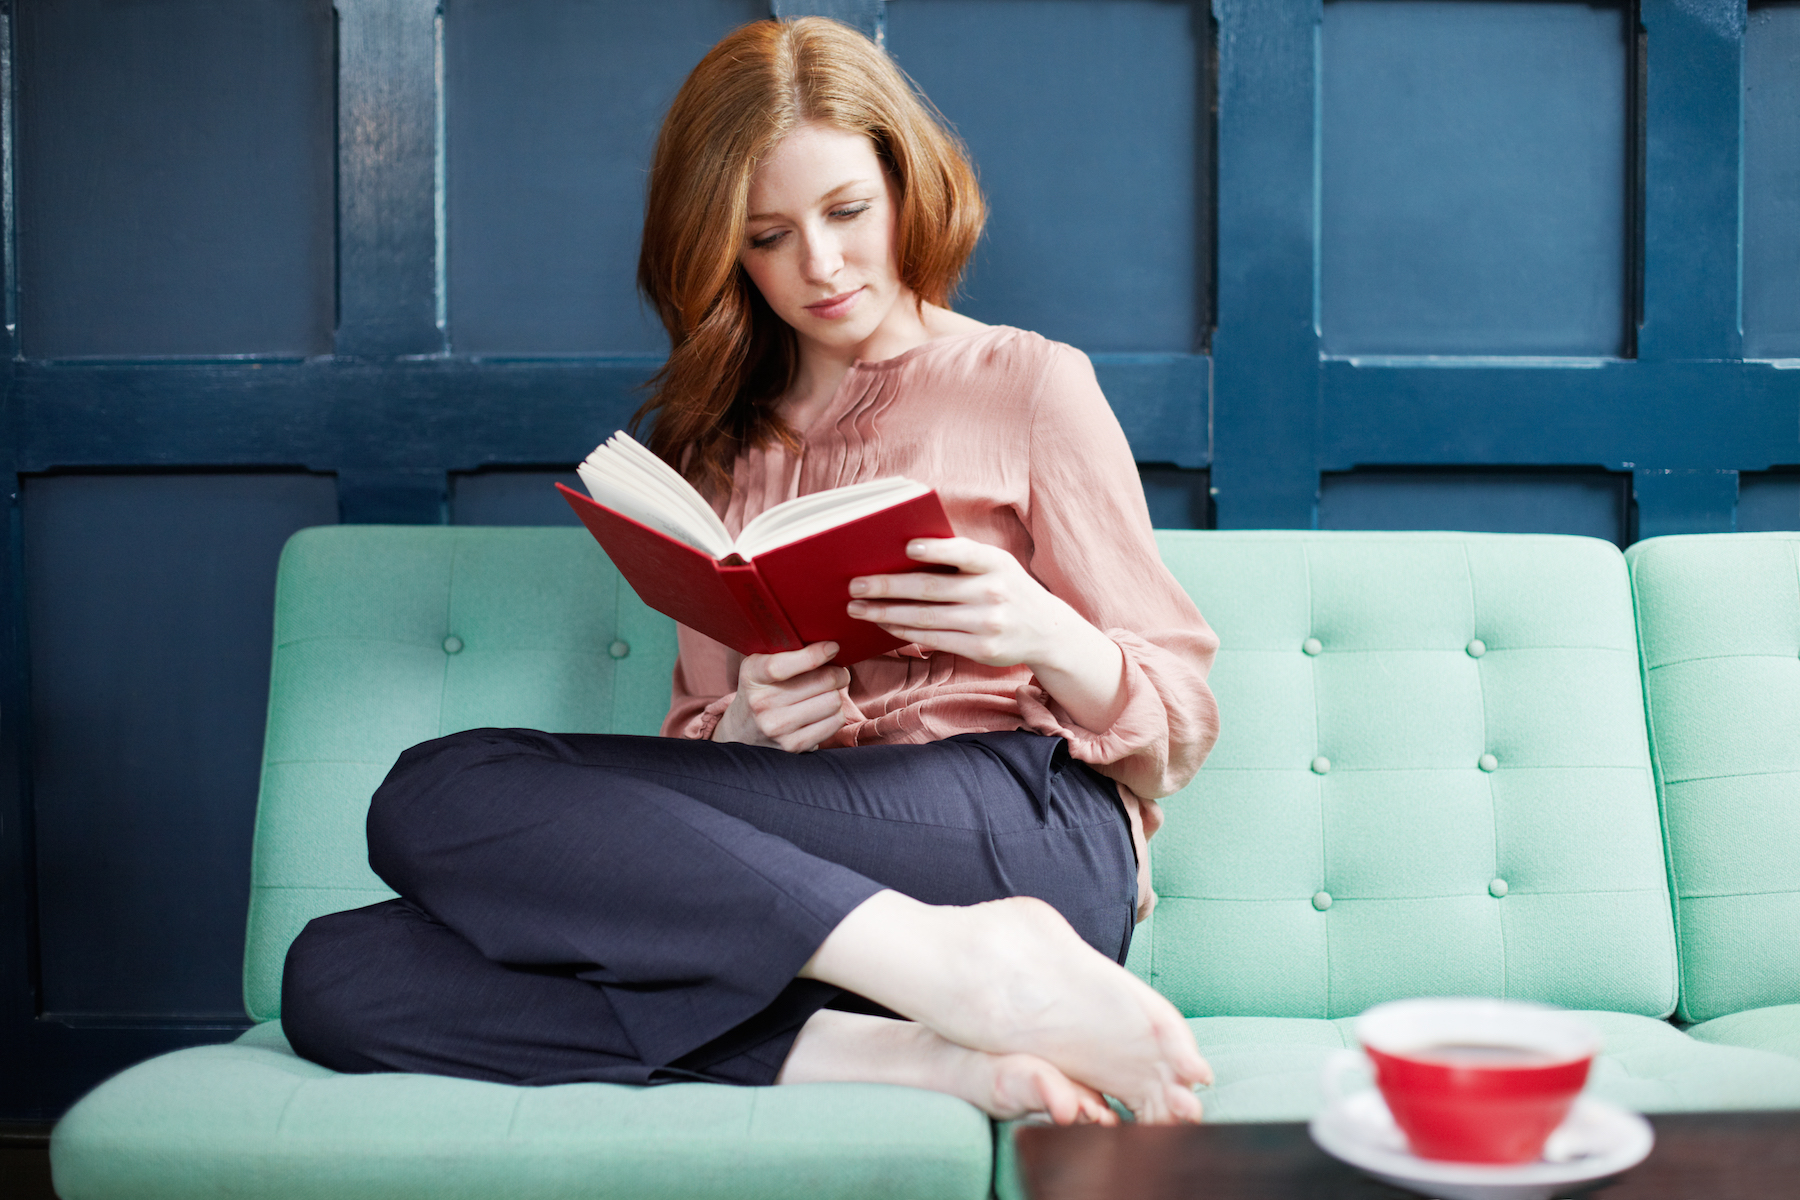 Woman reading book on colorful couch